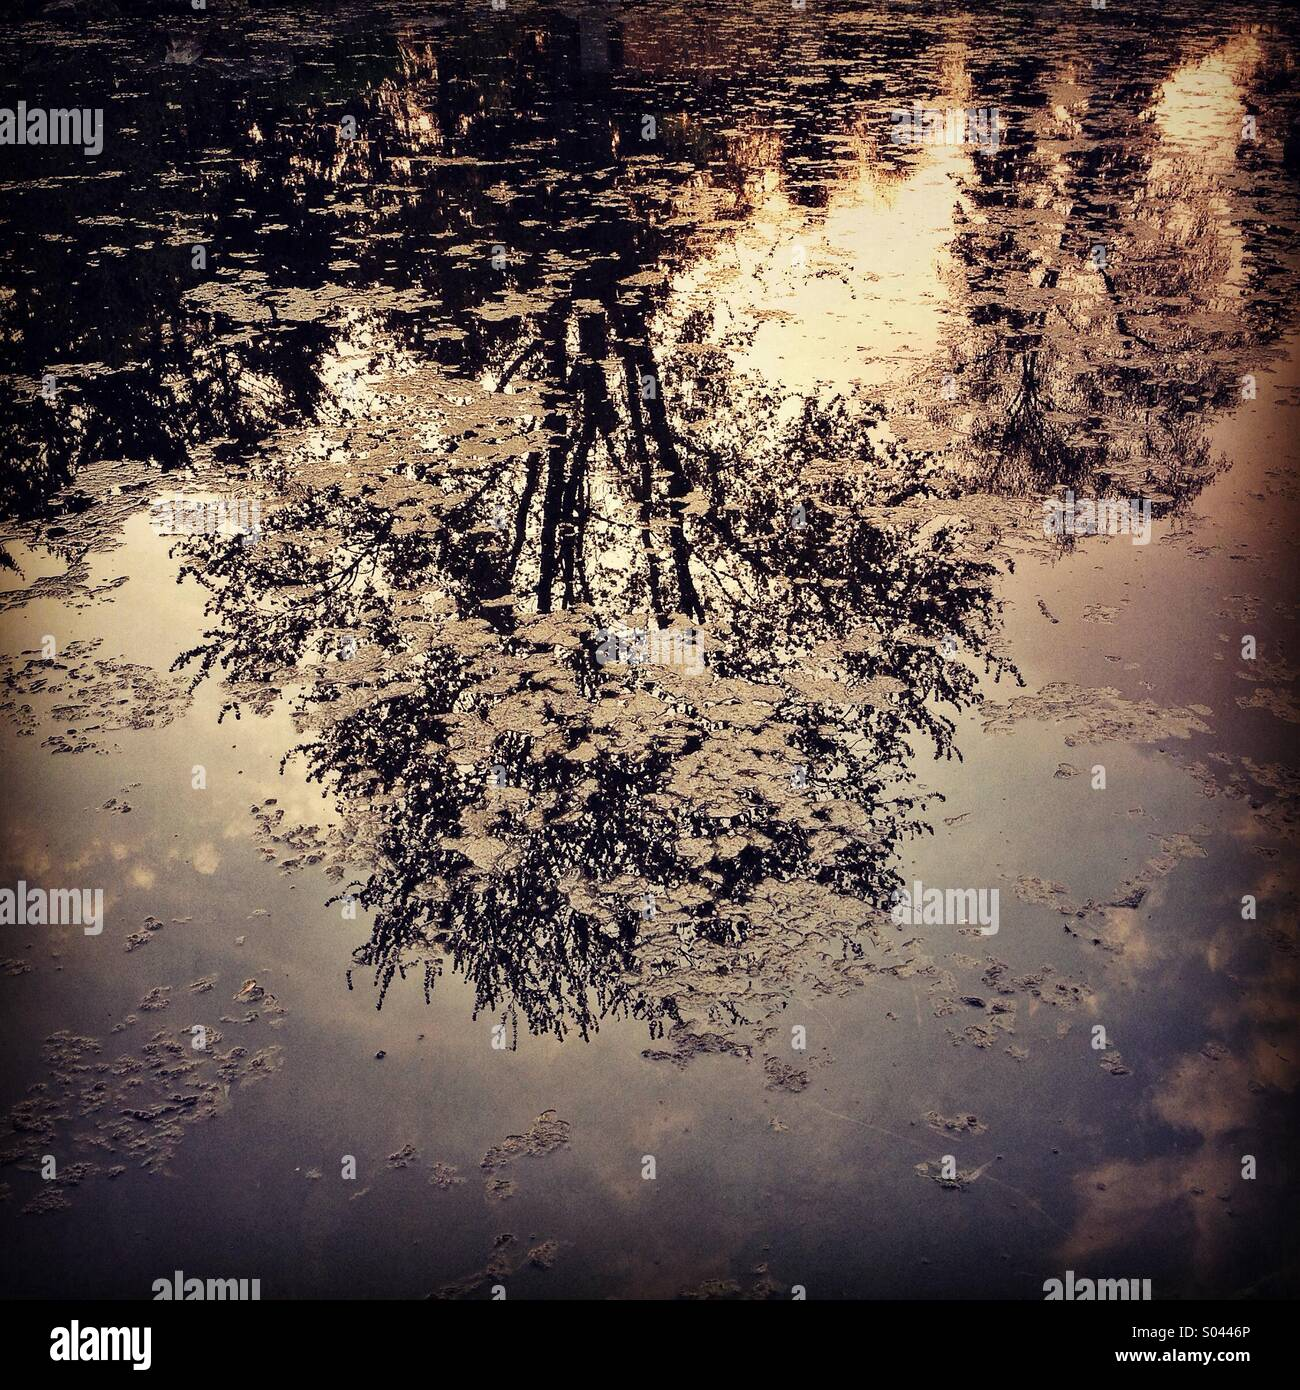 Tree reflected in pond at sunset. - Stock Image